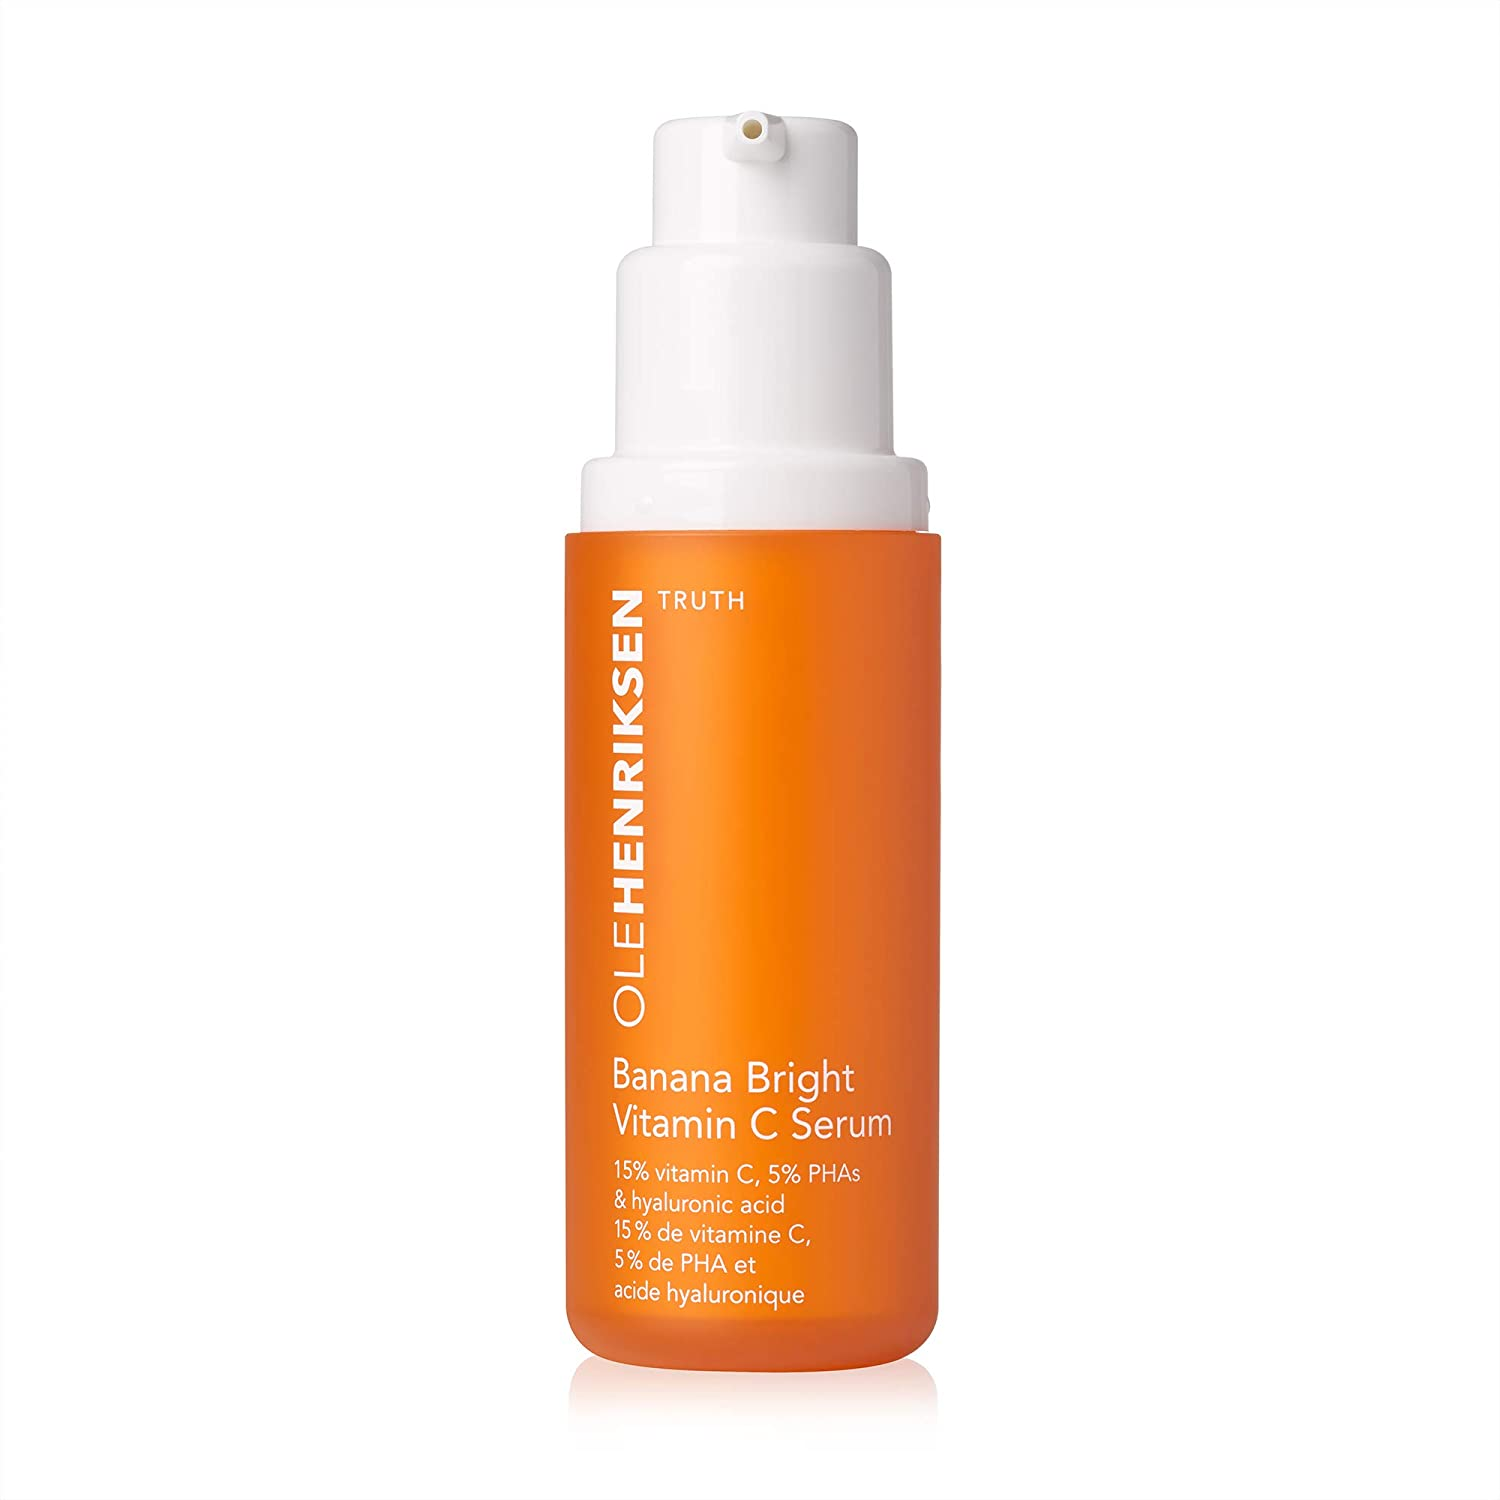 OLEHENRIKSEN Ole Henriksen Banana Bright Vitamin C Serum 1.0 oz/ 30 ml